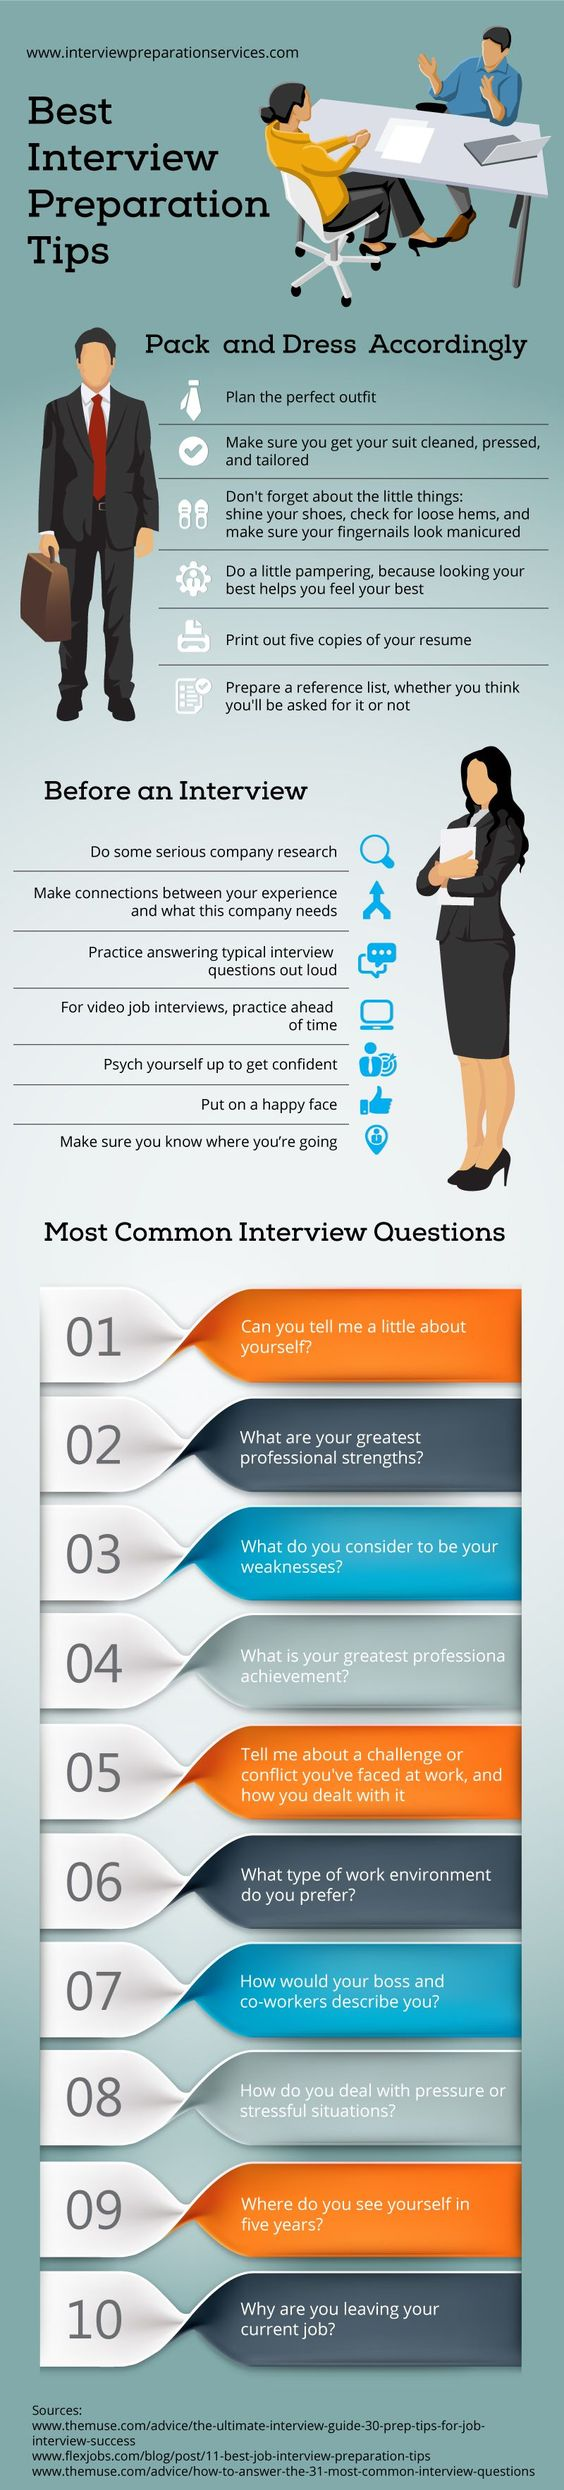 all in one place the best job interview preparation tips all in one place the best job interview preparation tips infographic the